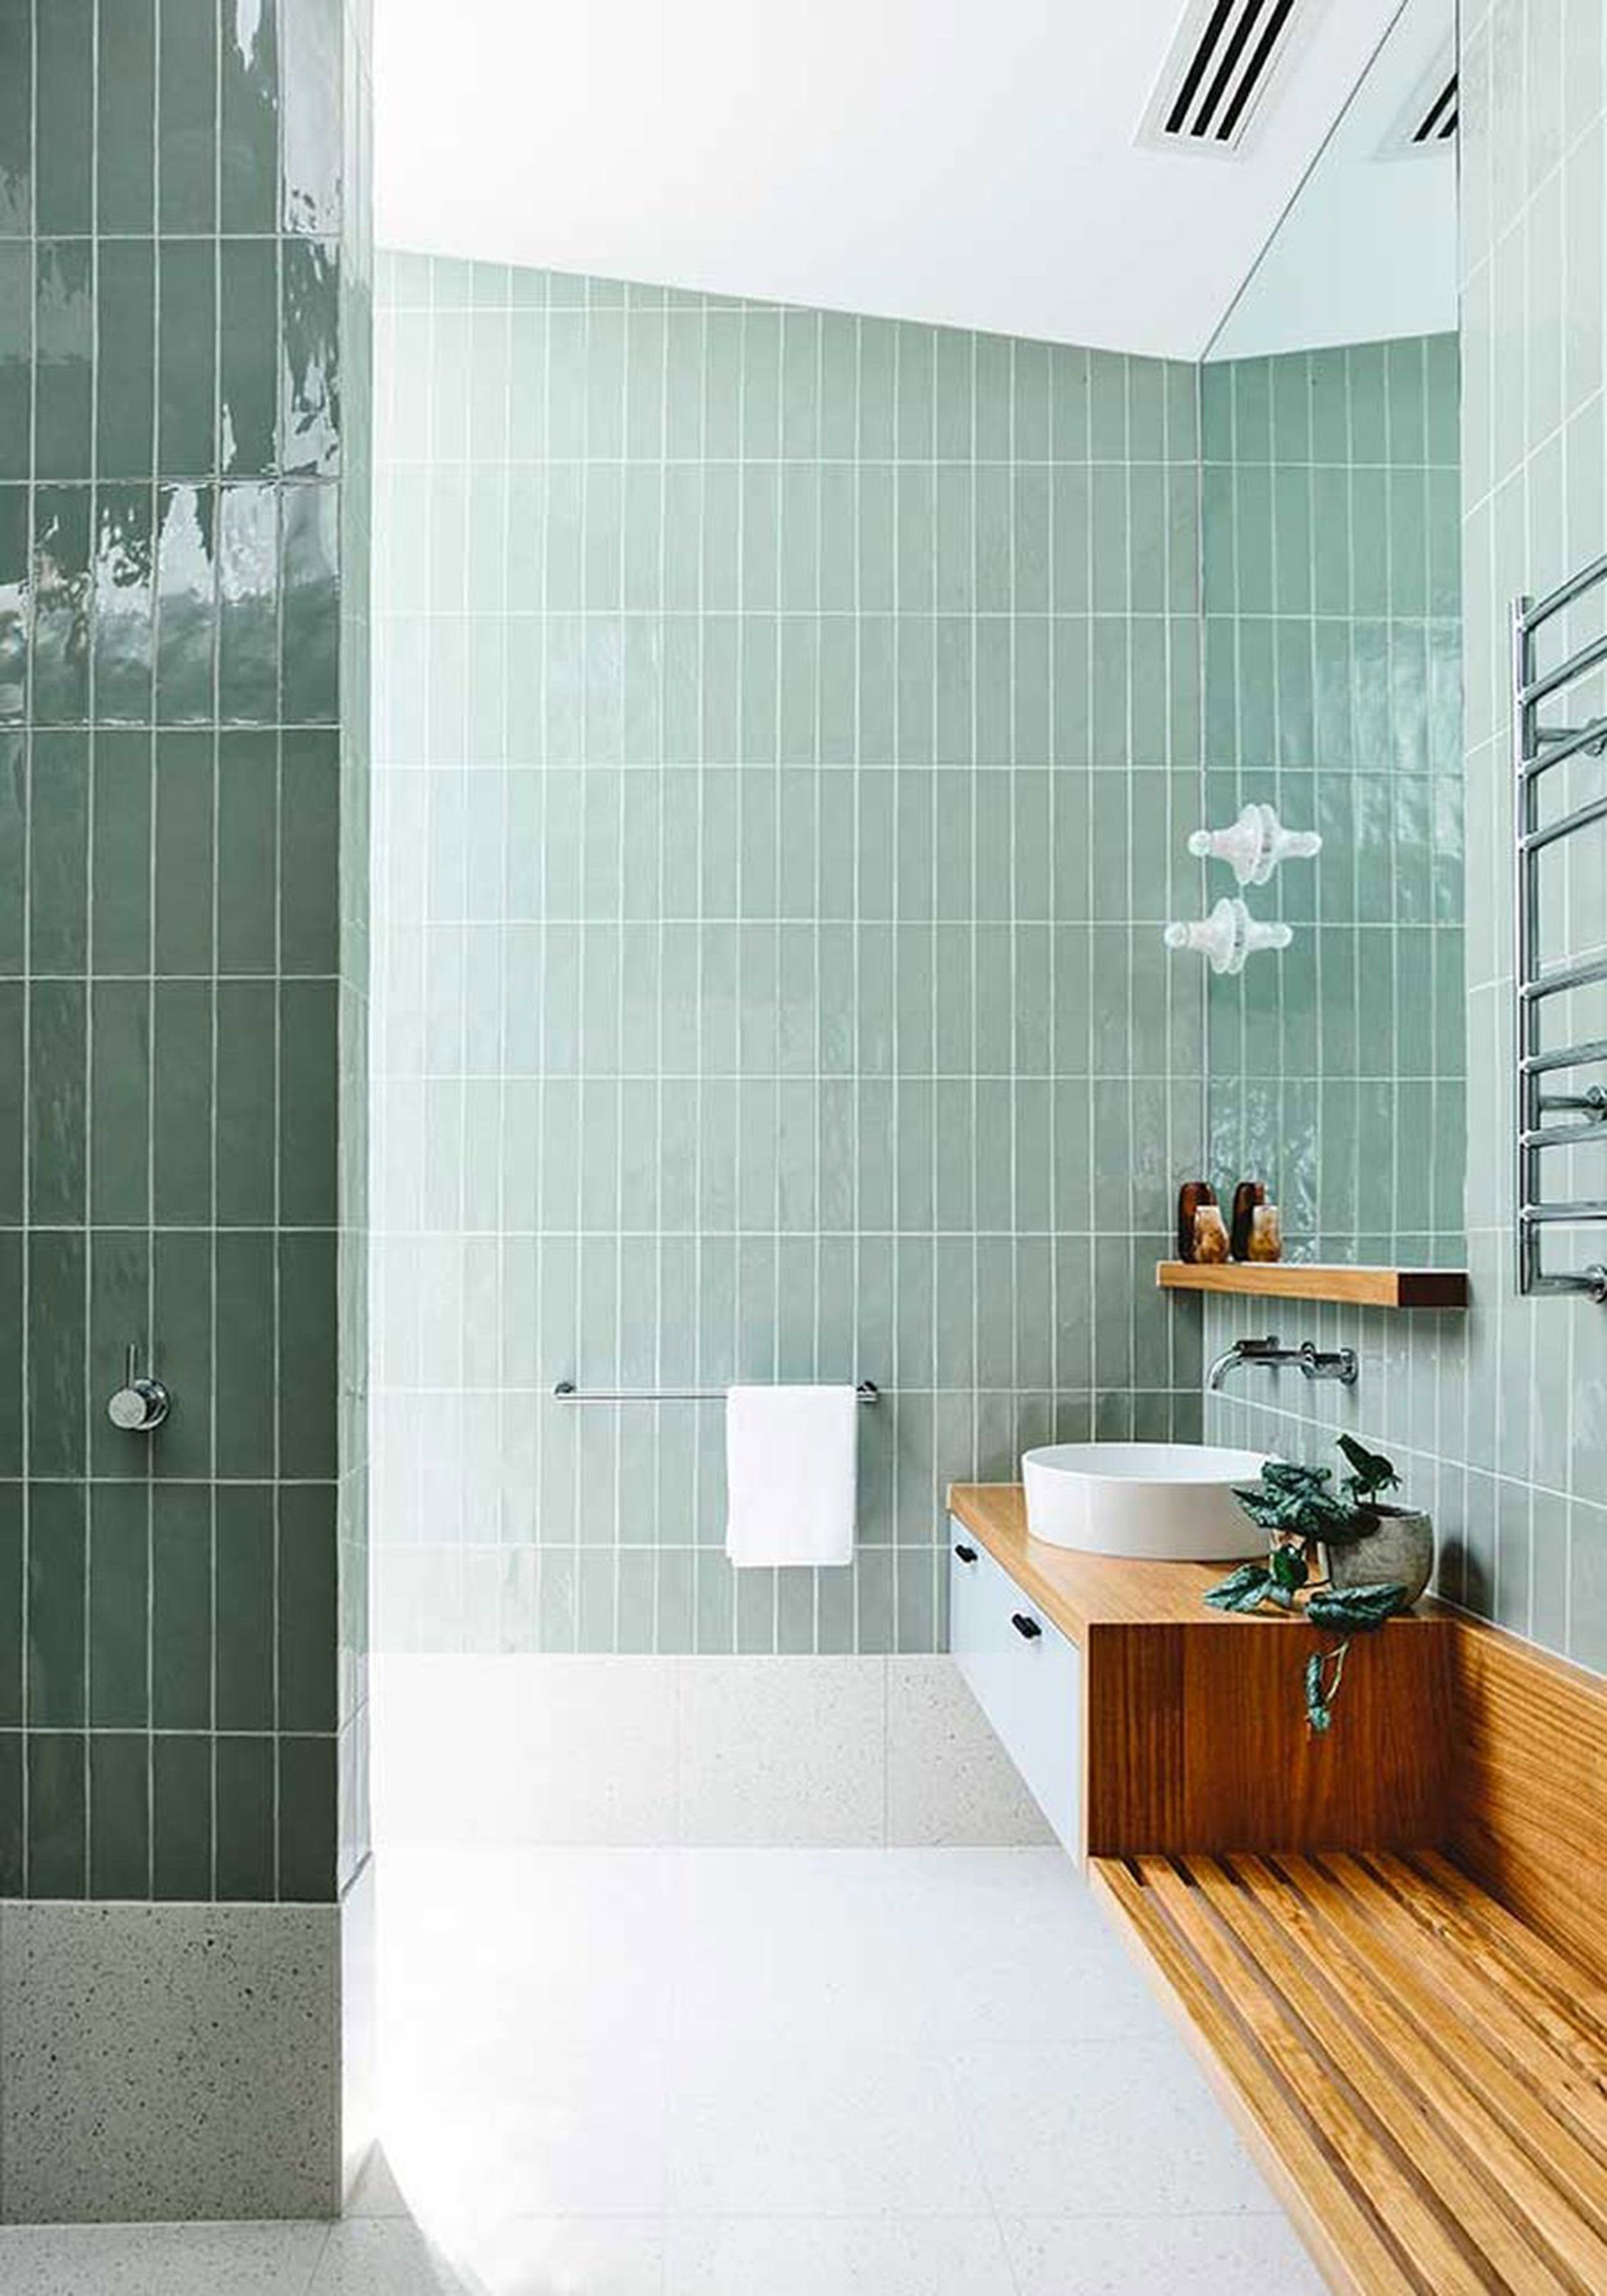 Bathroom Trends Are Stacked Tiles the New Subway Tile Style by